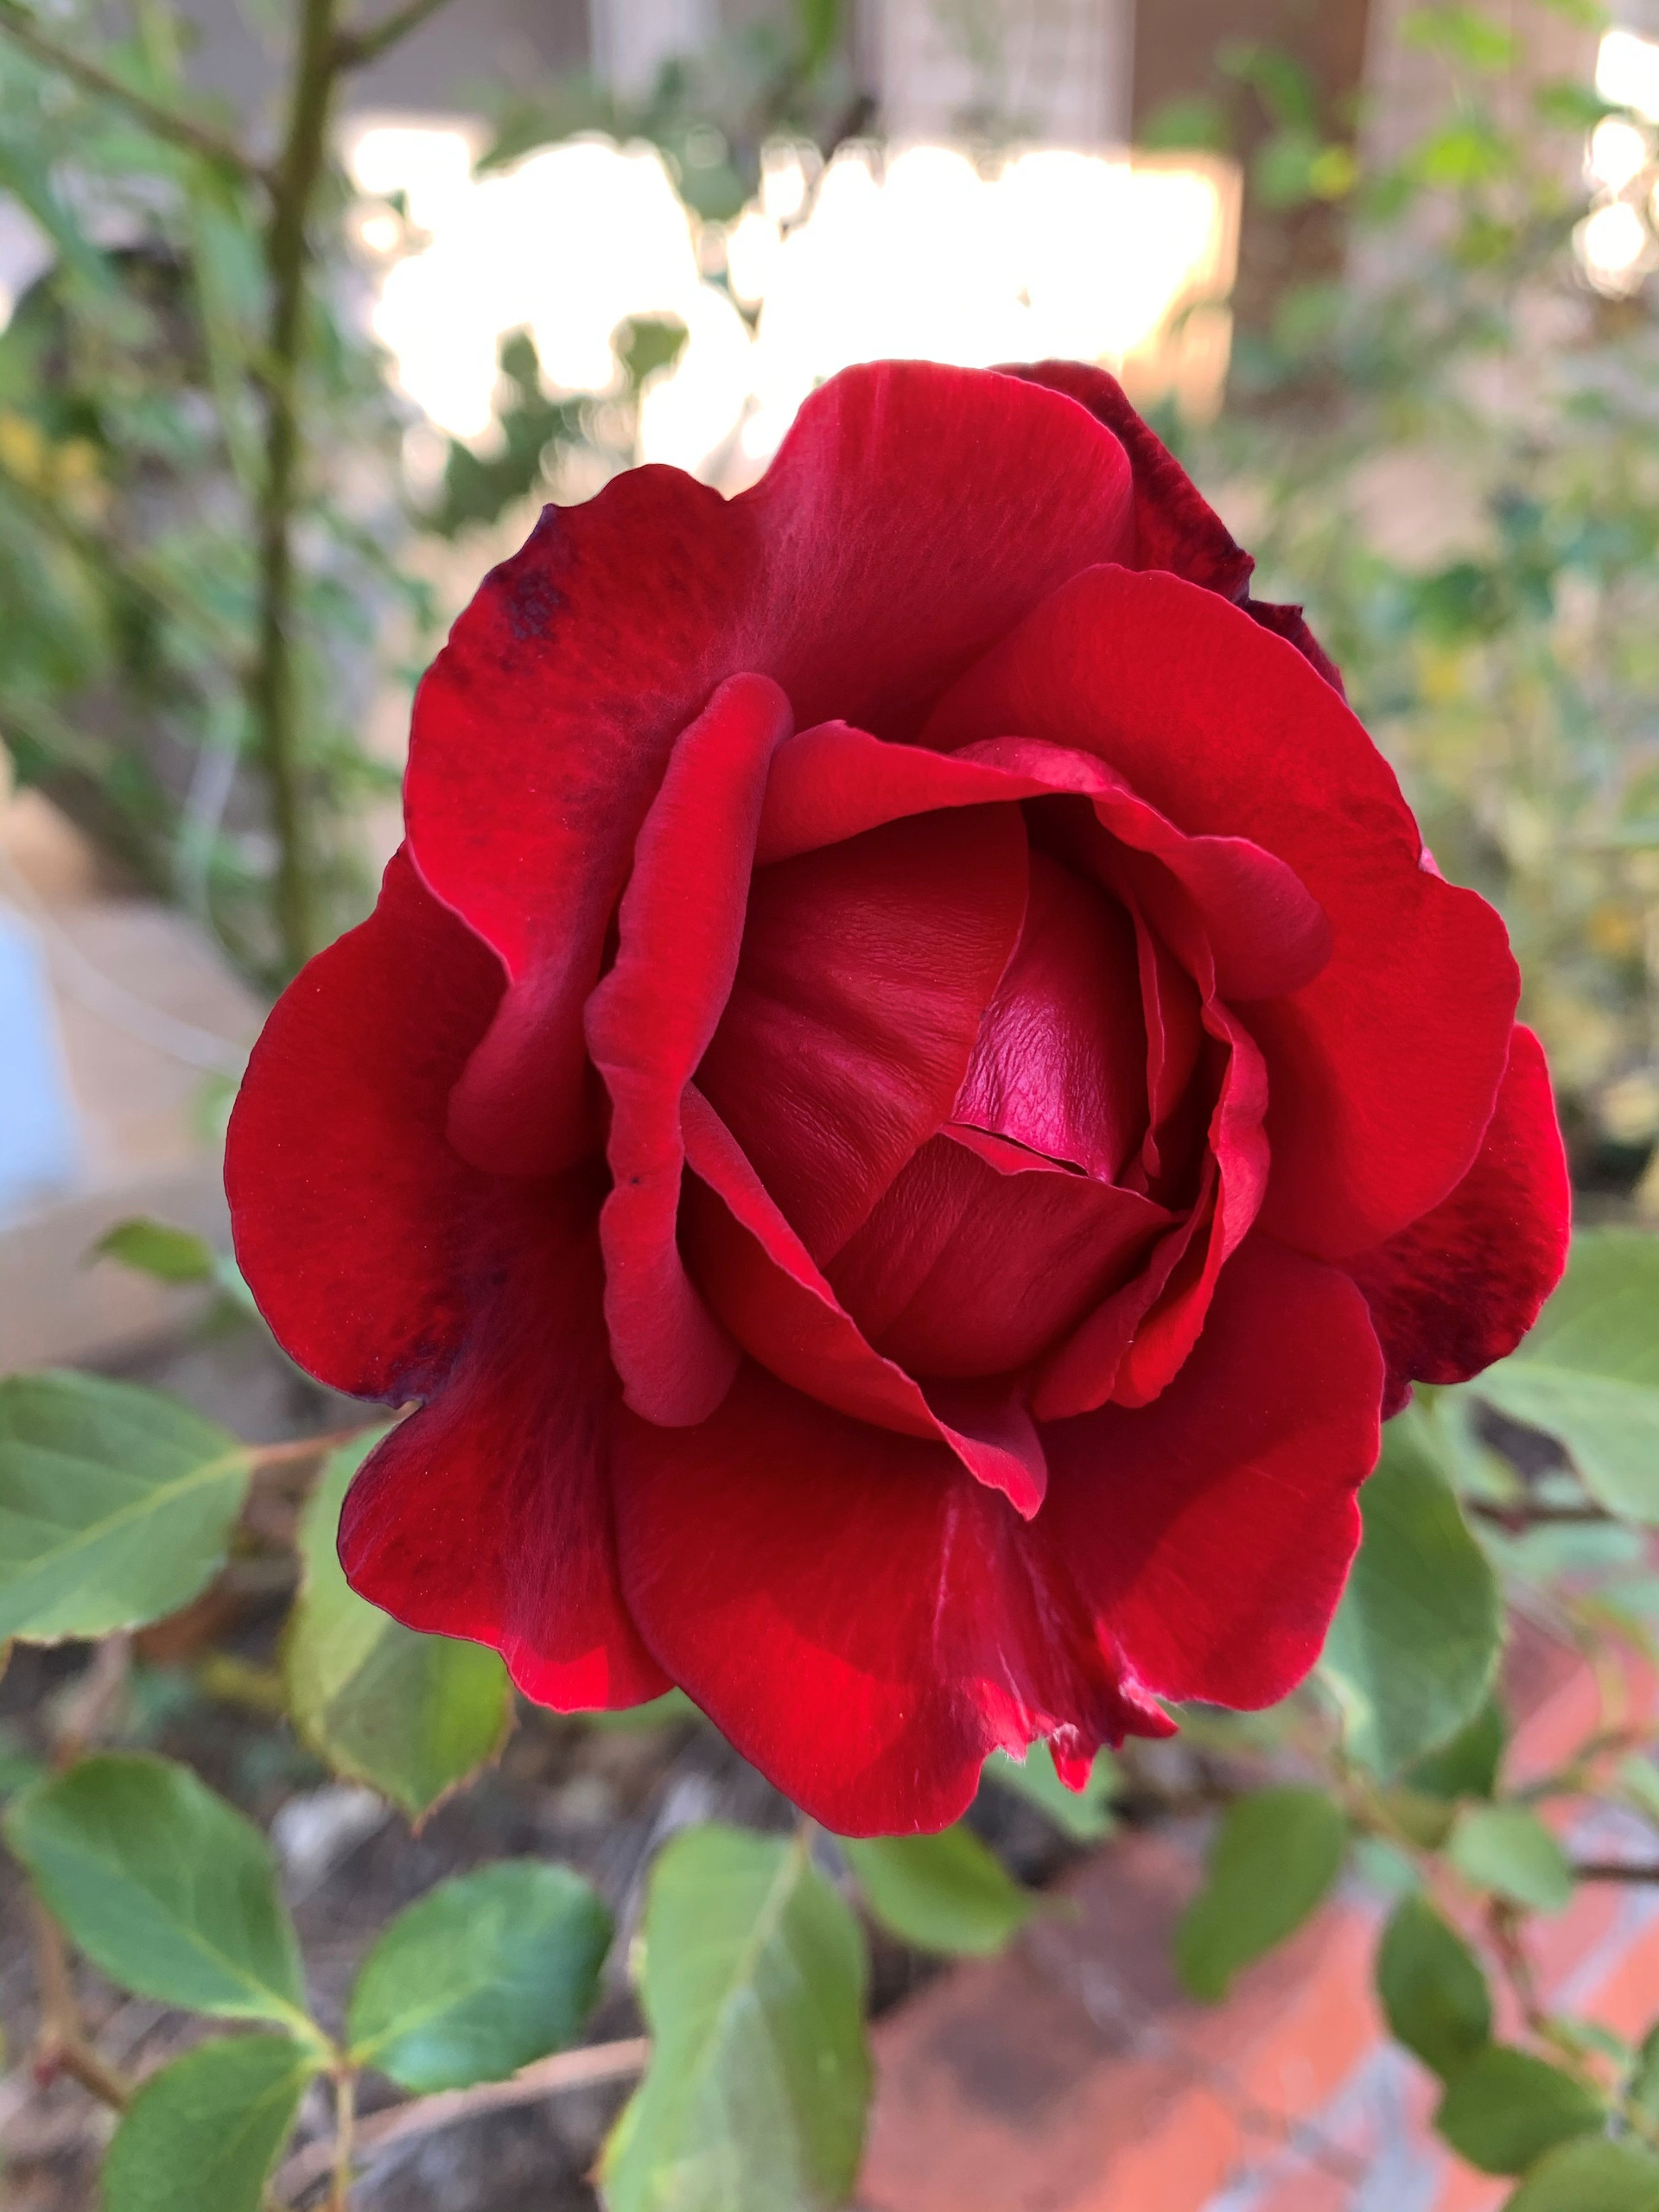 A rose by any other name ...